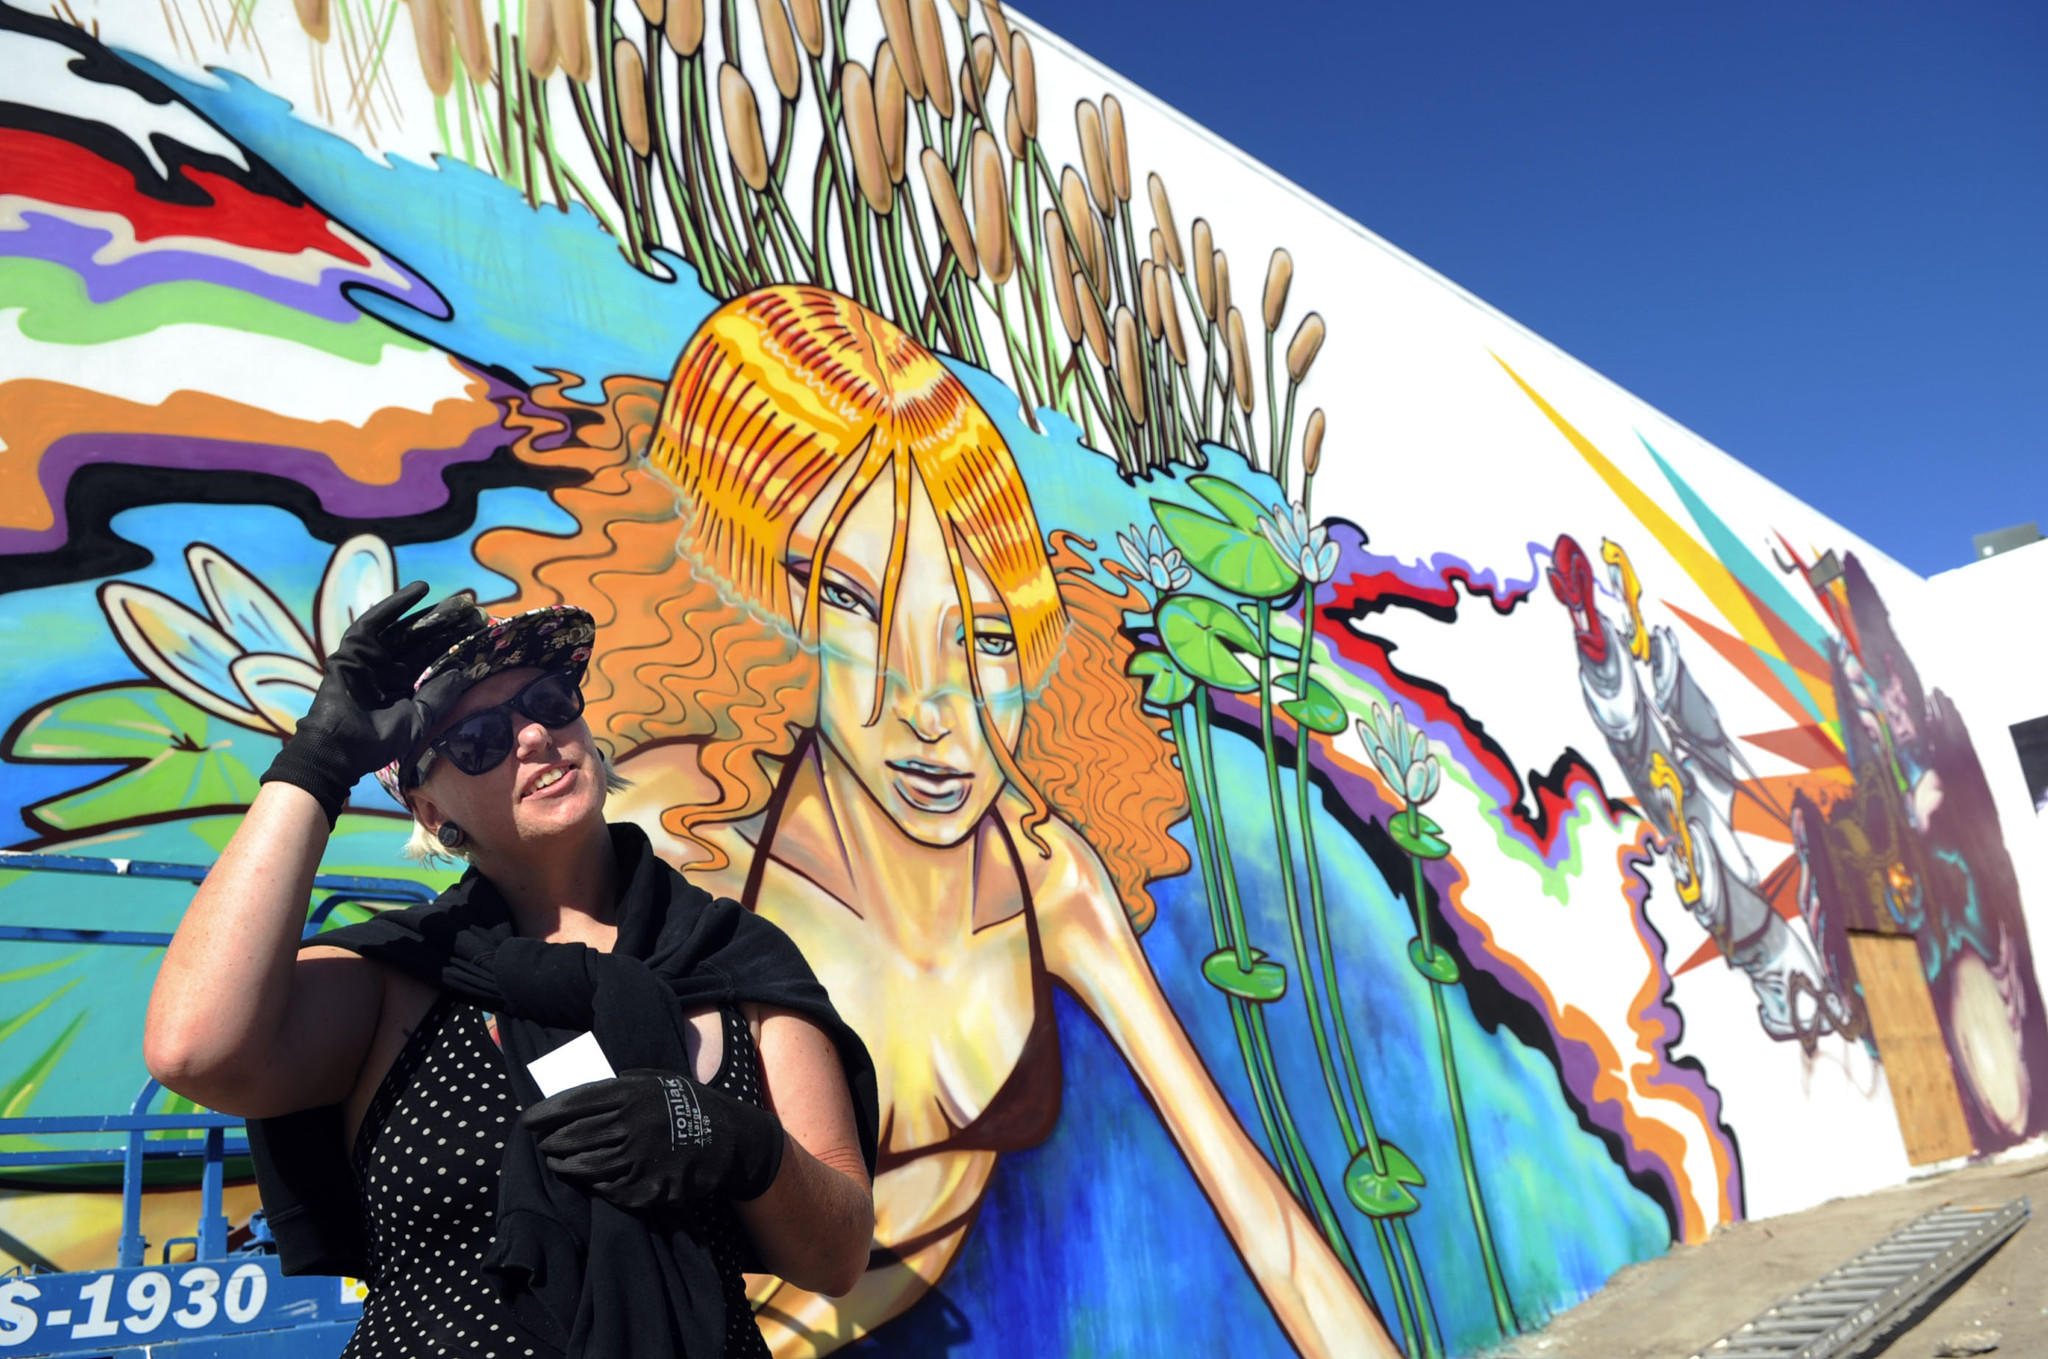 """West Palm Beach, 12/18/2013 -- Mural artist Kaz """"Kazilla"""" Williams of Miami, takes a break from painting a mural in the 500 block of Fern Street Wednesday. Mark Randall, South Florida Sun Sentinel"""